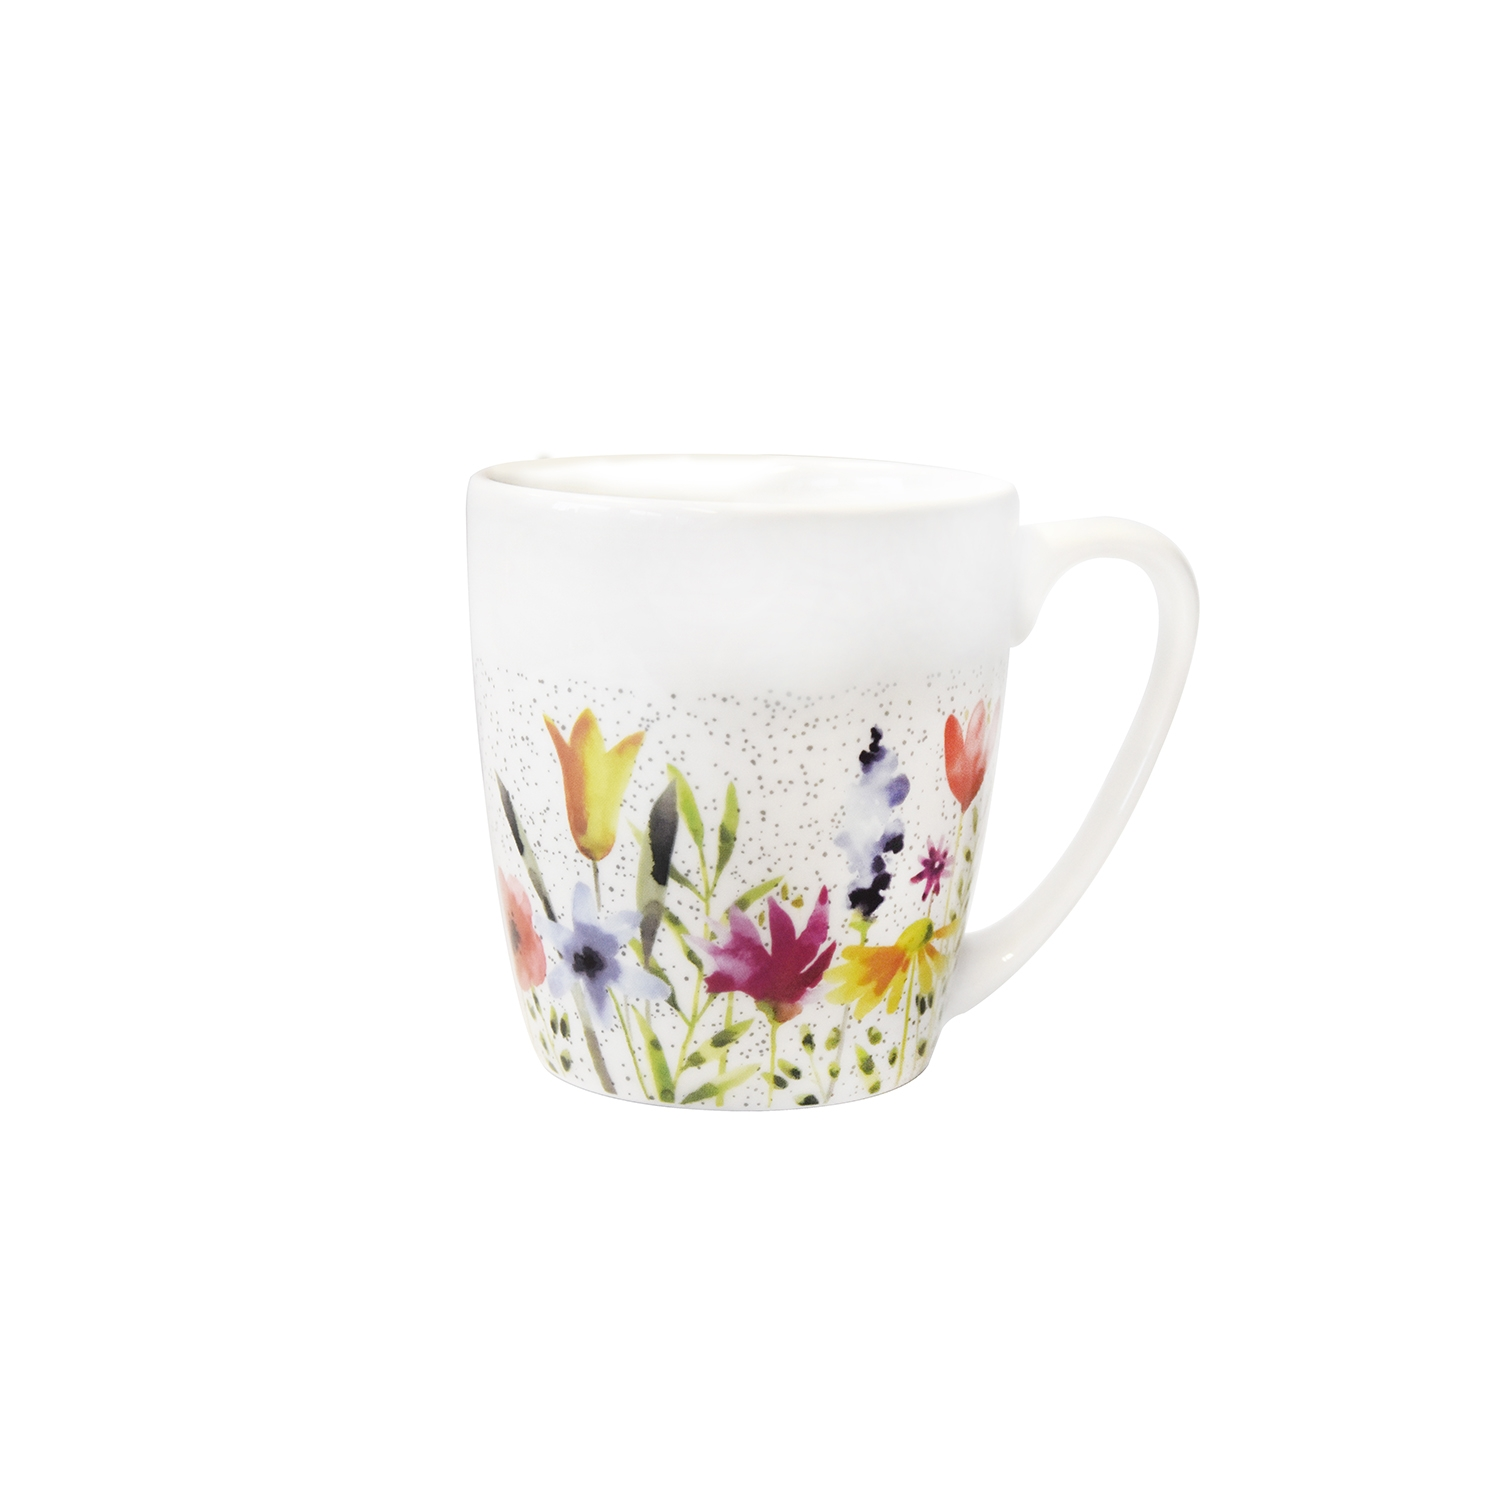 Image of Churchill China, Aquarelle Mug, White, 300ml